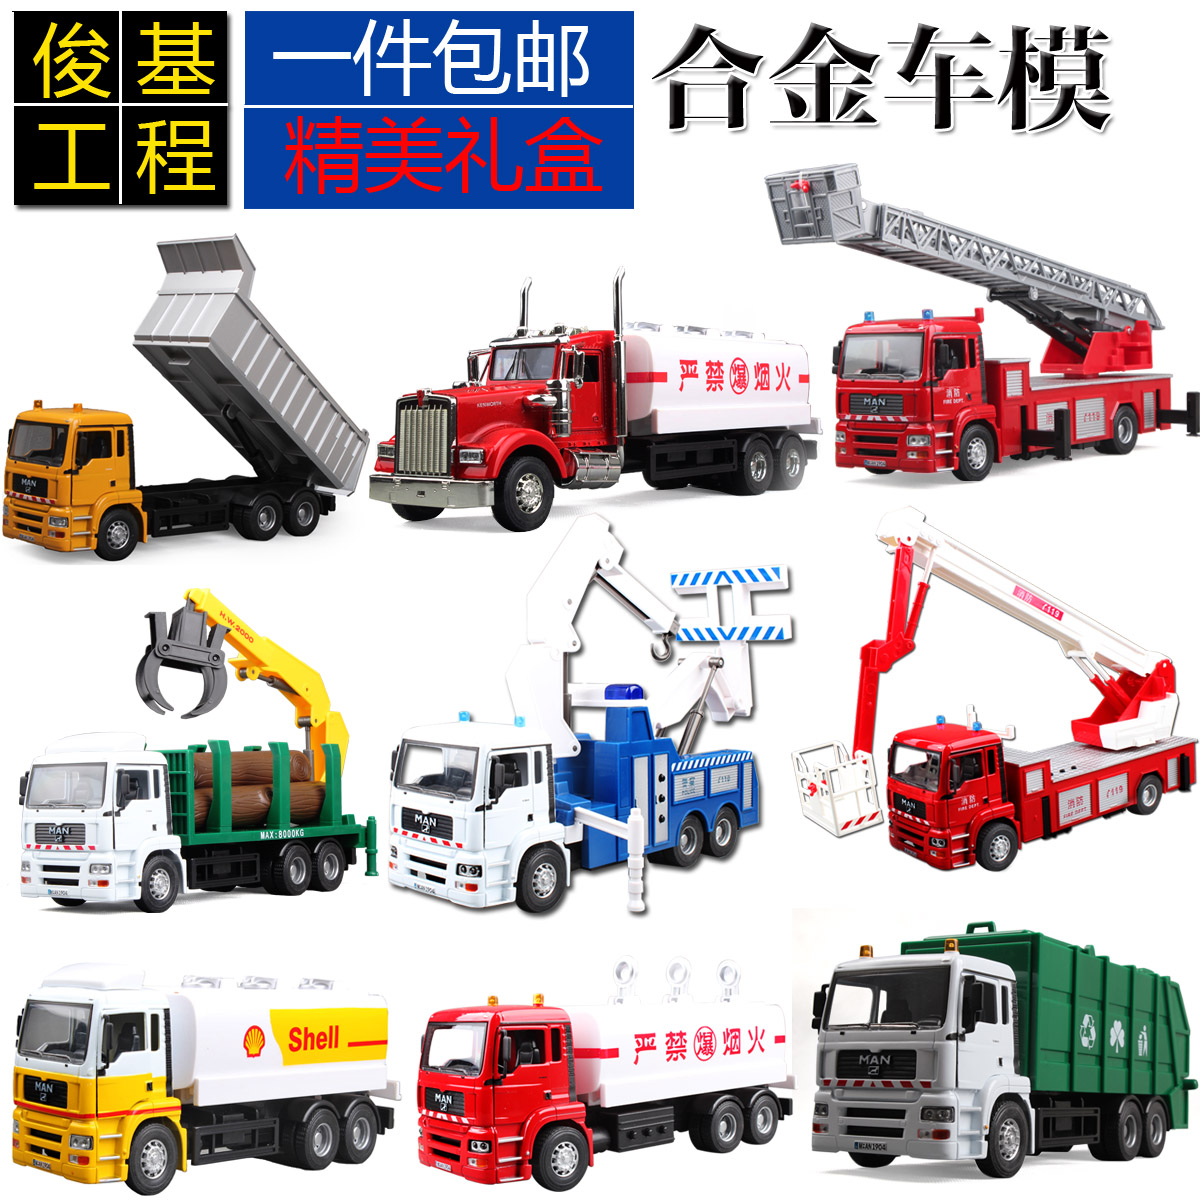 Csl alloy fire truck garbage truck sanitation trucks dump truck mixer truck children's toy car